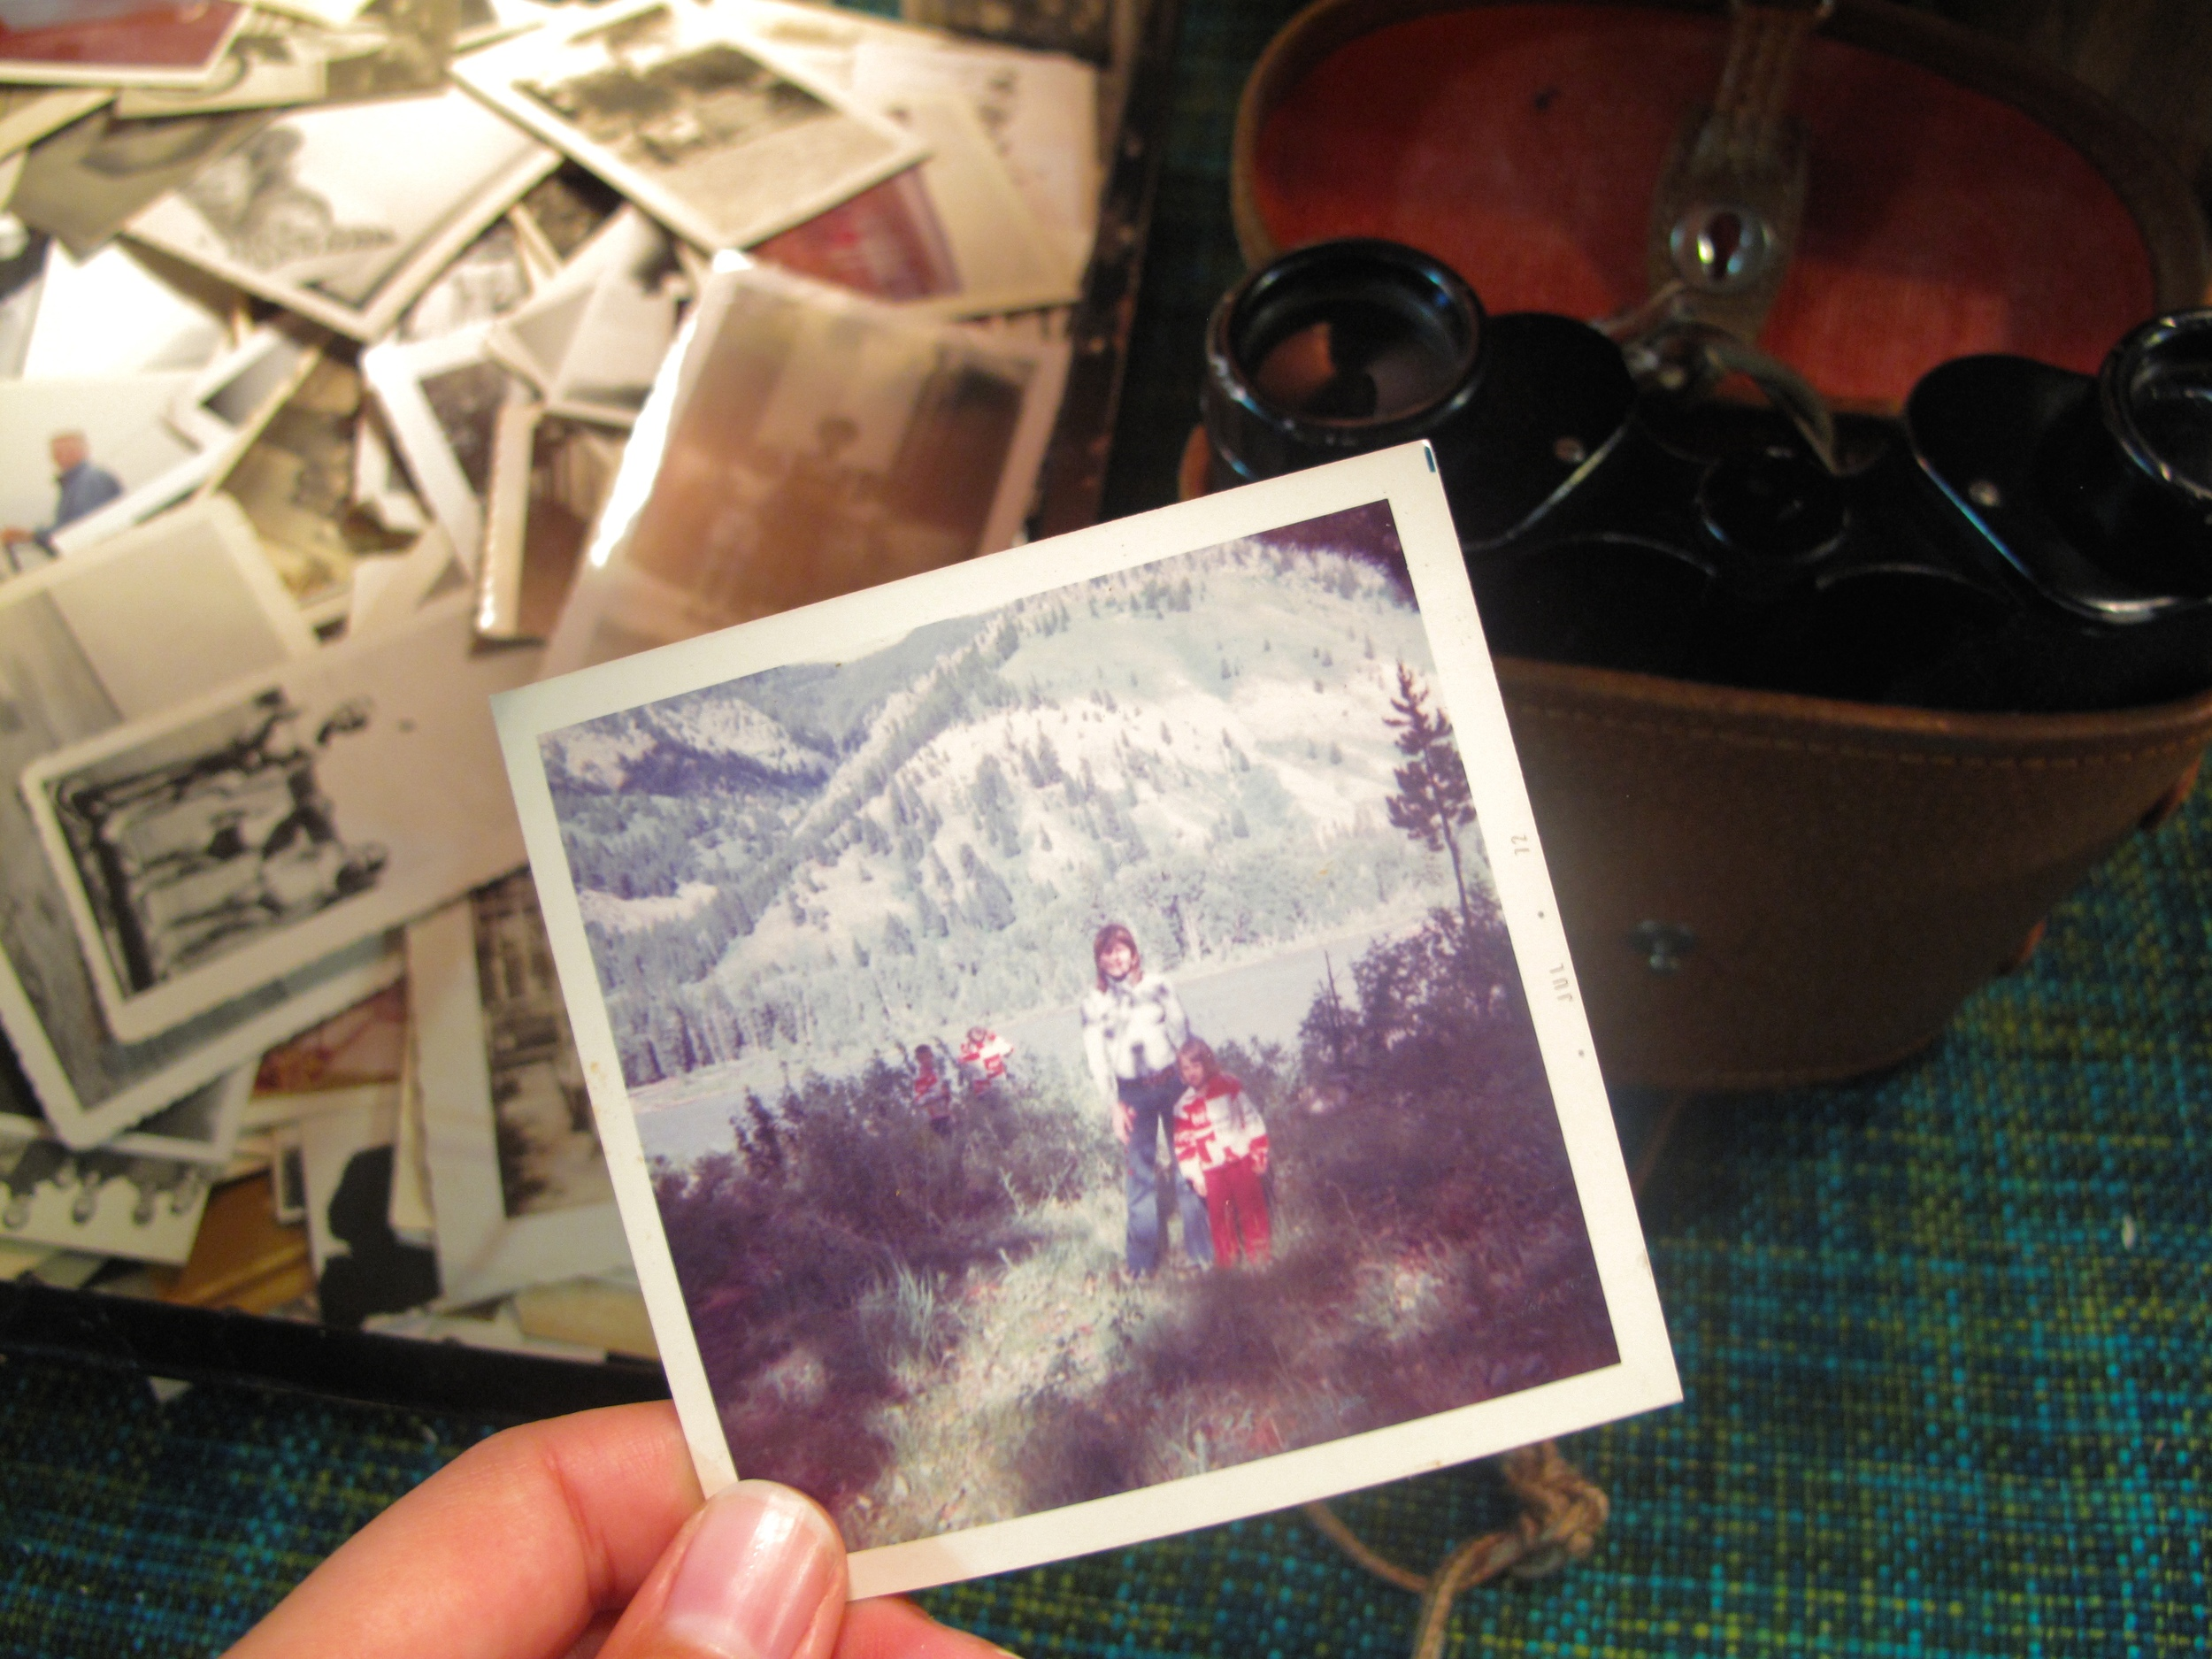 An old photograph of a family camping and binoculars,at a thrift shop in Seattle.